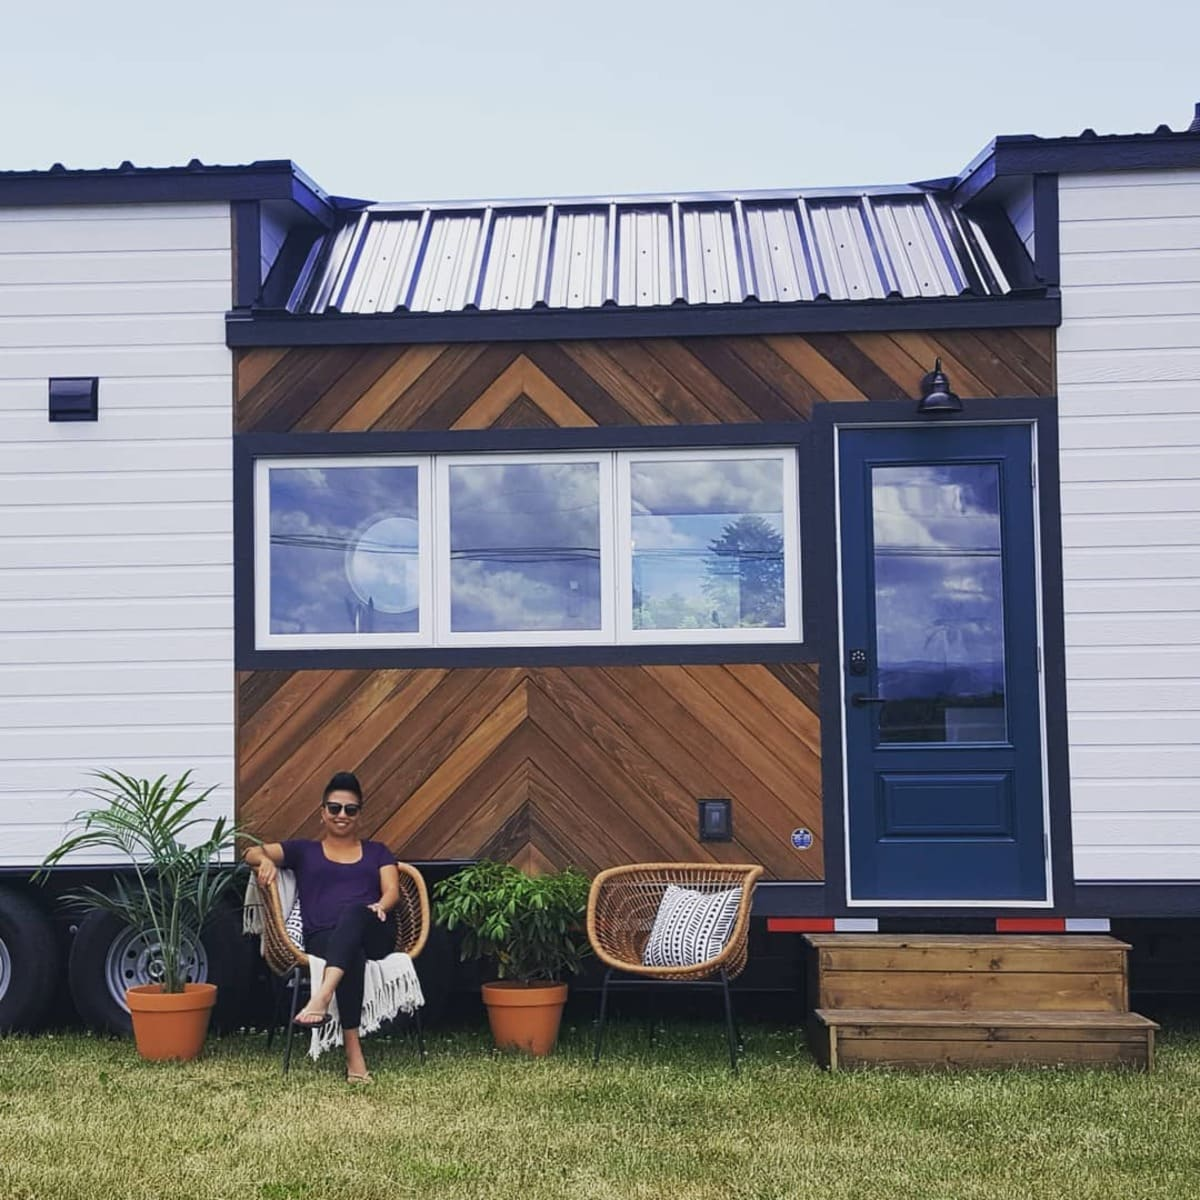 magnolia tiny house 22 1 - Tiny house serves as family holiday home and retirement investment